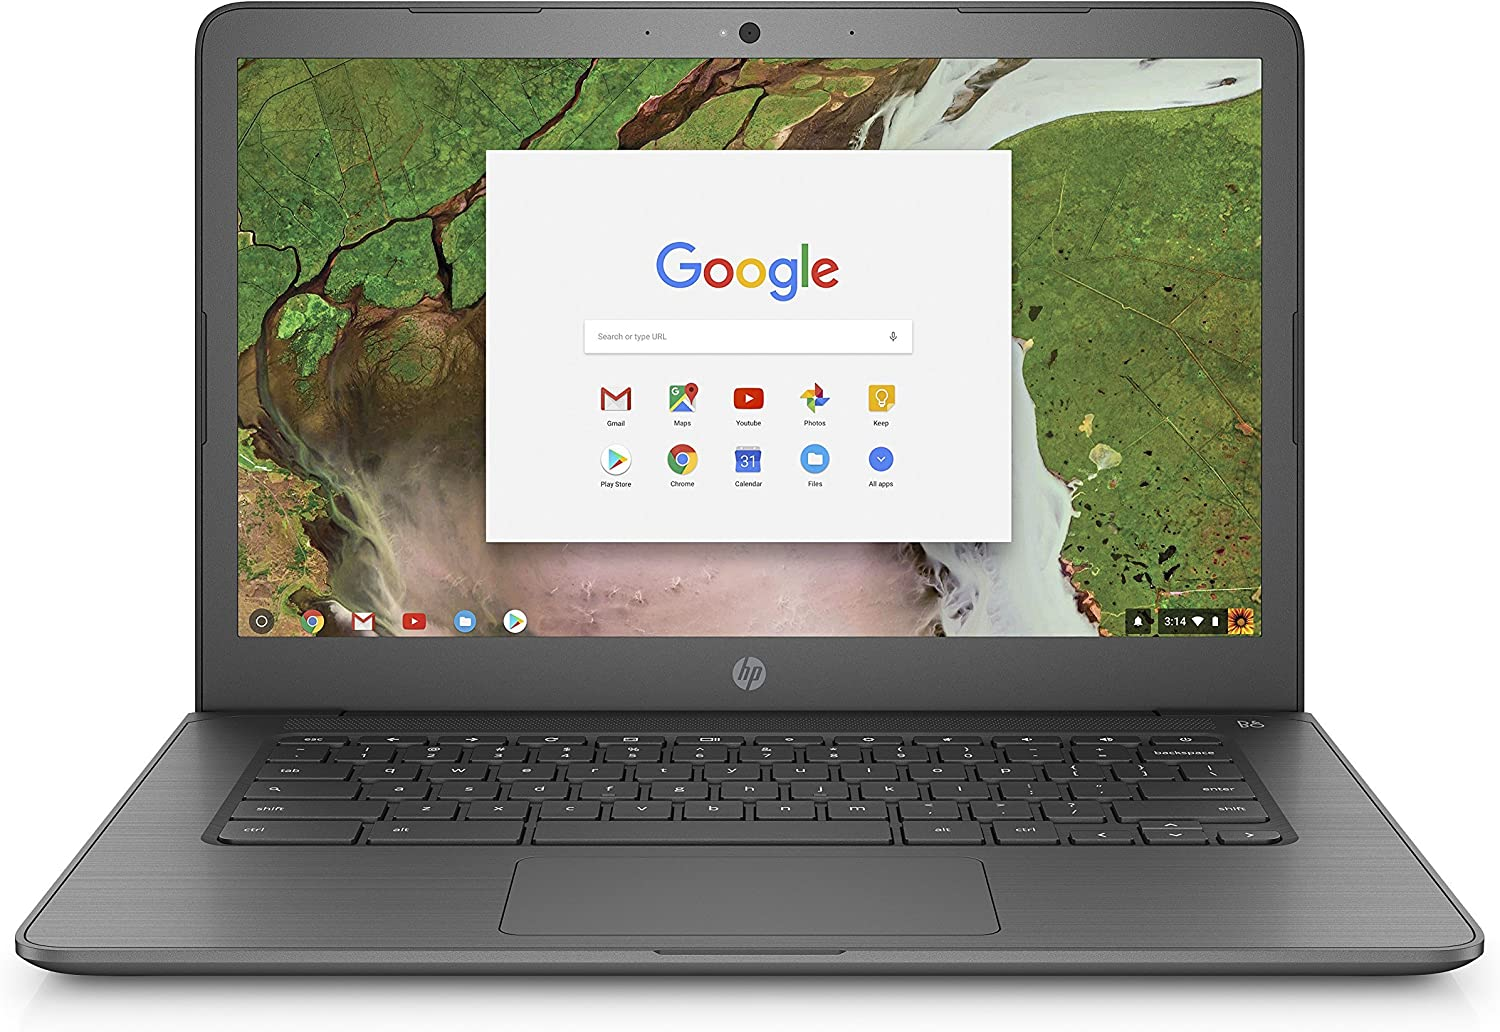 HP Chromebook 14-inch Laptop with 180-degree hinge, Intel Celeron N3350 Processor, 4 GB RAM, 16 GB eMMC storage, Chrome OS (14-ca020nr, Gray) (Renewed)